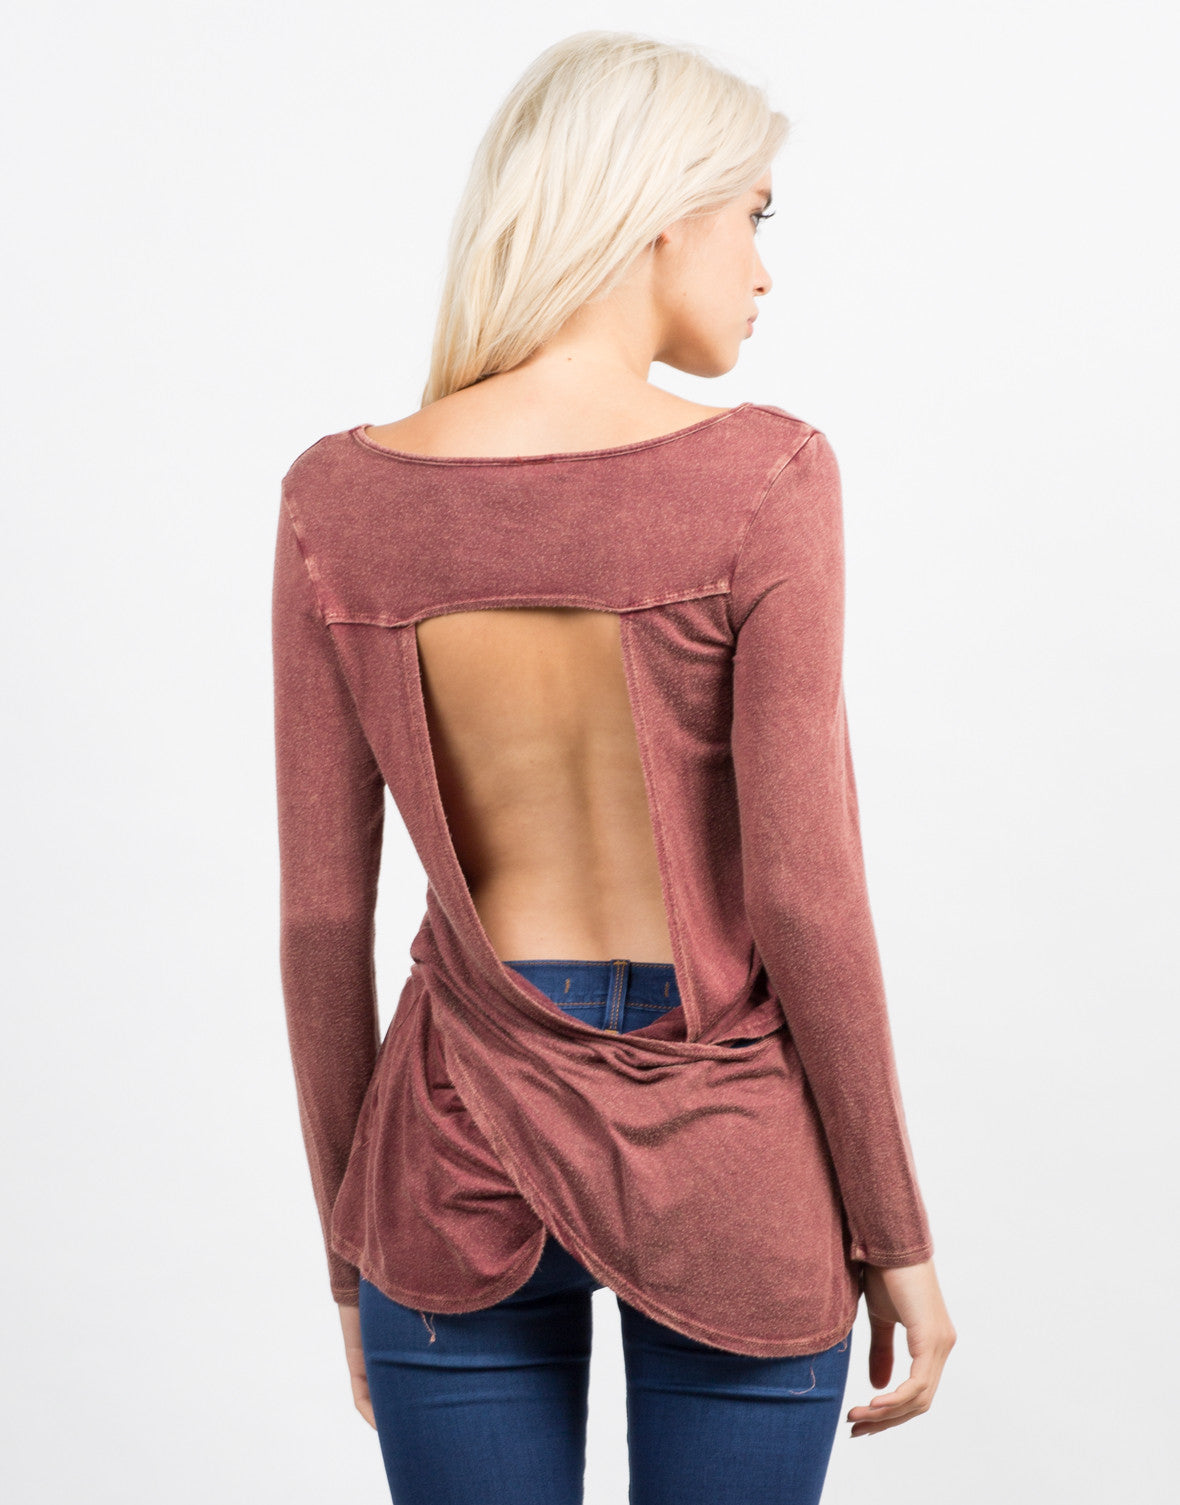 Back View of Vintage Open Back Tee